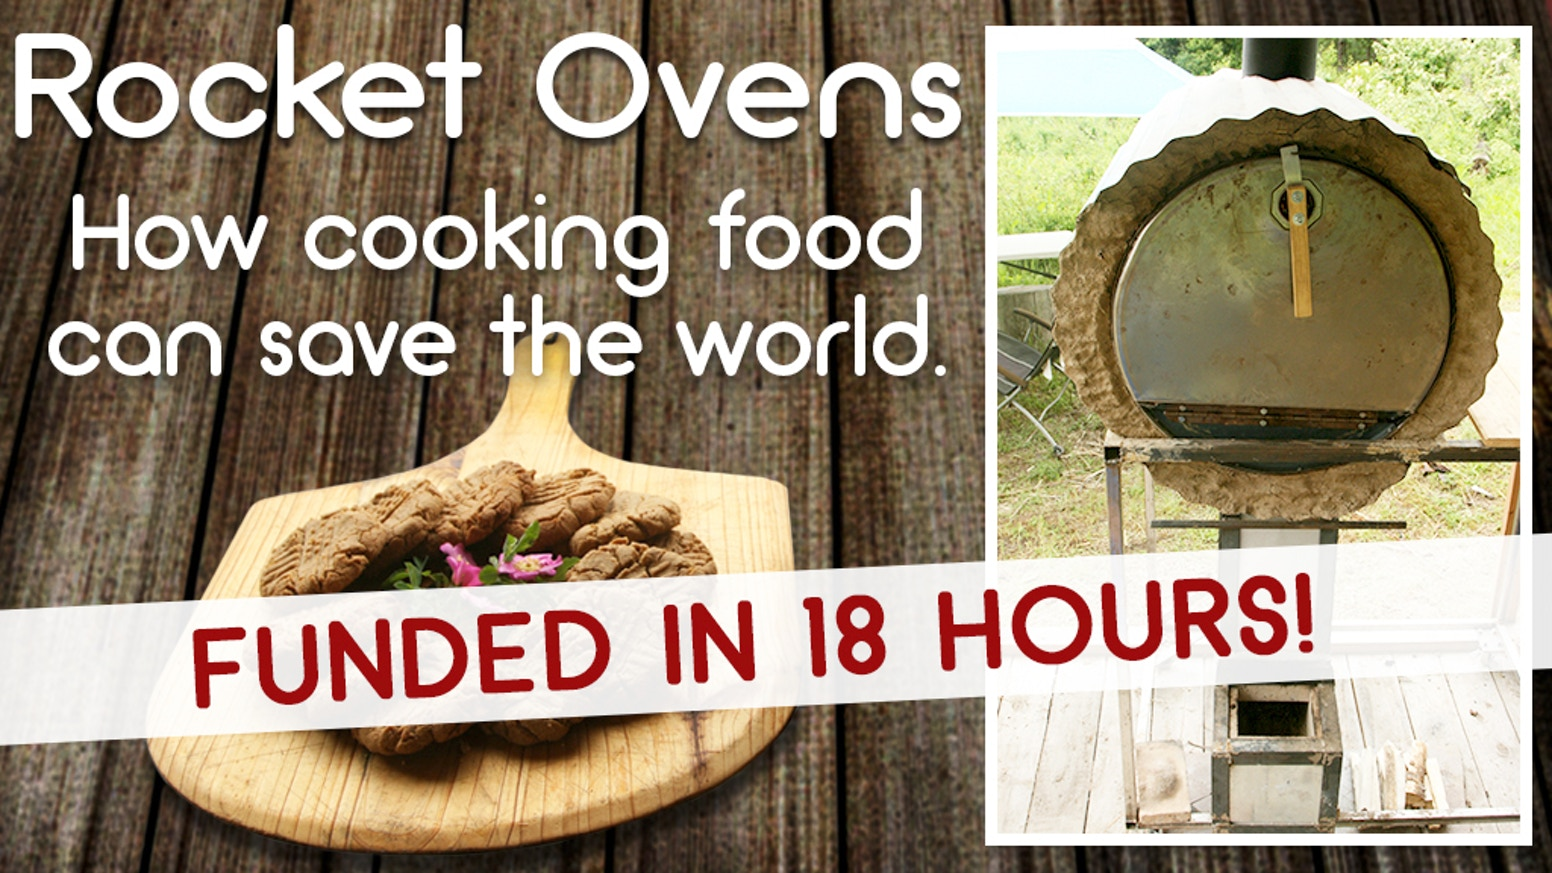 Build an oven powered by just a few twigs from your yard. The carbon footprint is about 1% that of an electric oven.